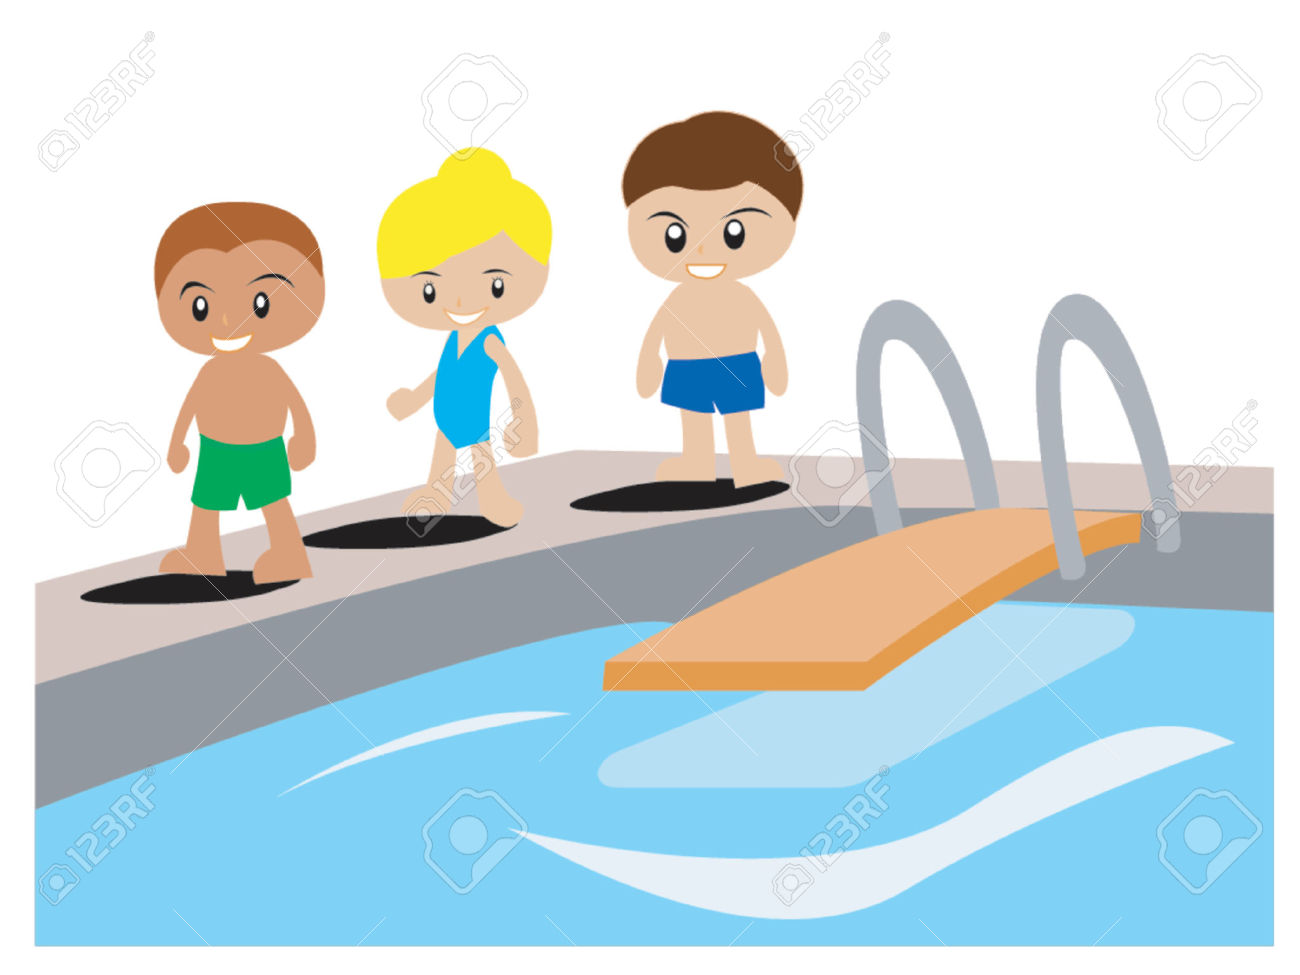 Boys Swimming Pool Clipart-Boys swimming pool clipart-2